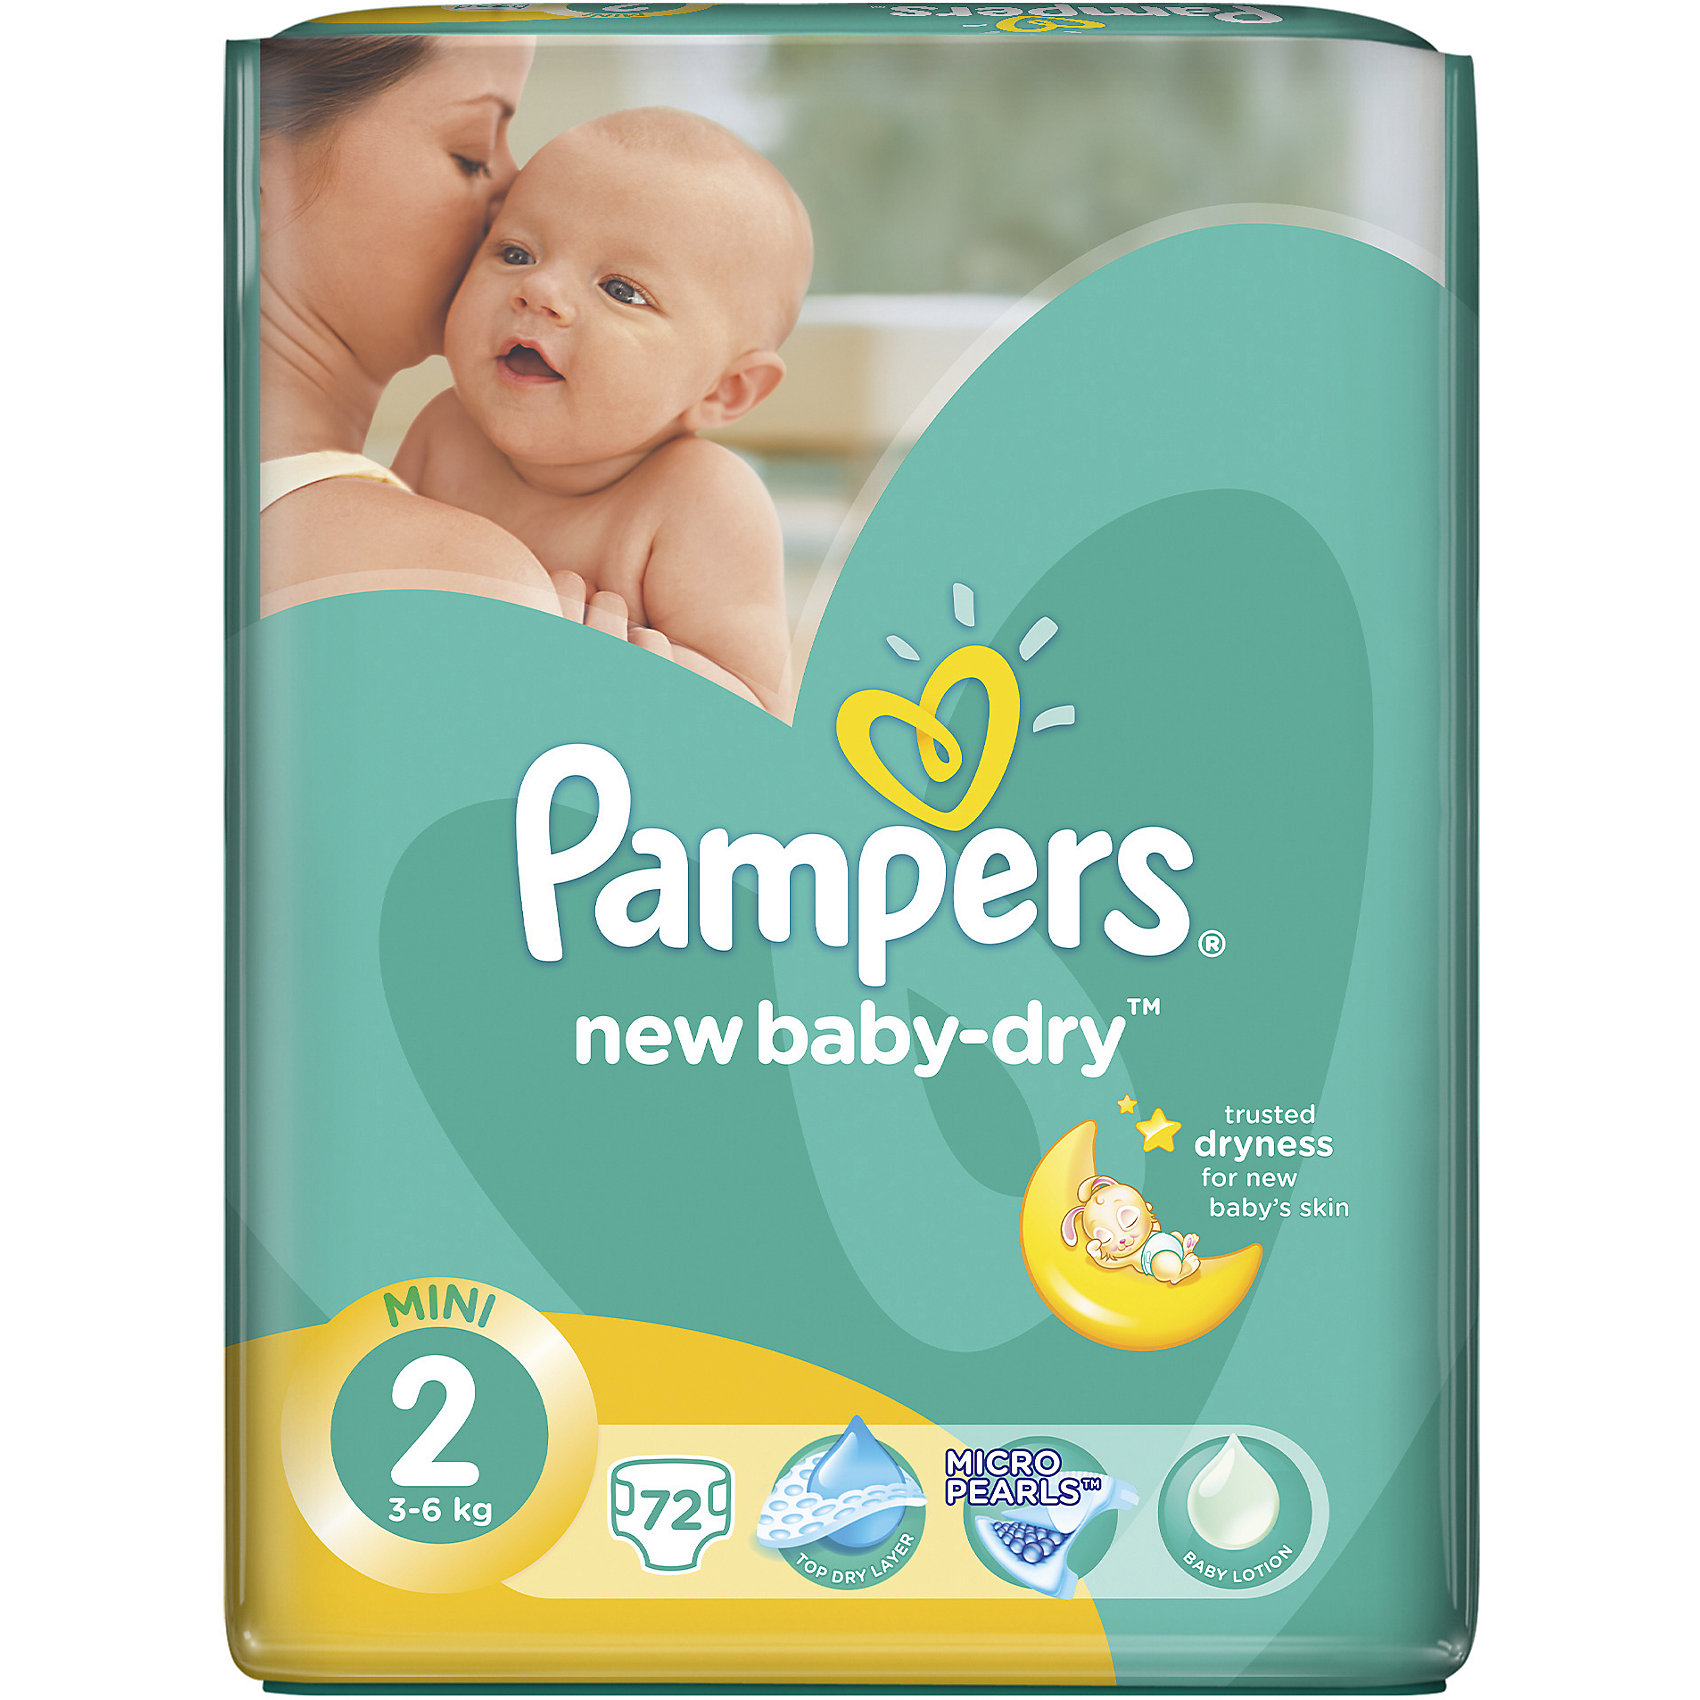 Подгузники Pampers New Baby-Dry, 3-6 кг, 2 размер, 72 шт., Pampers